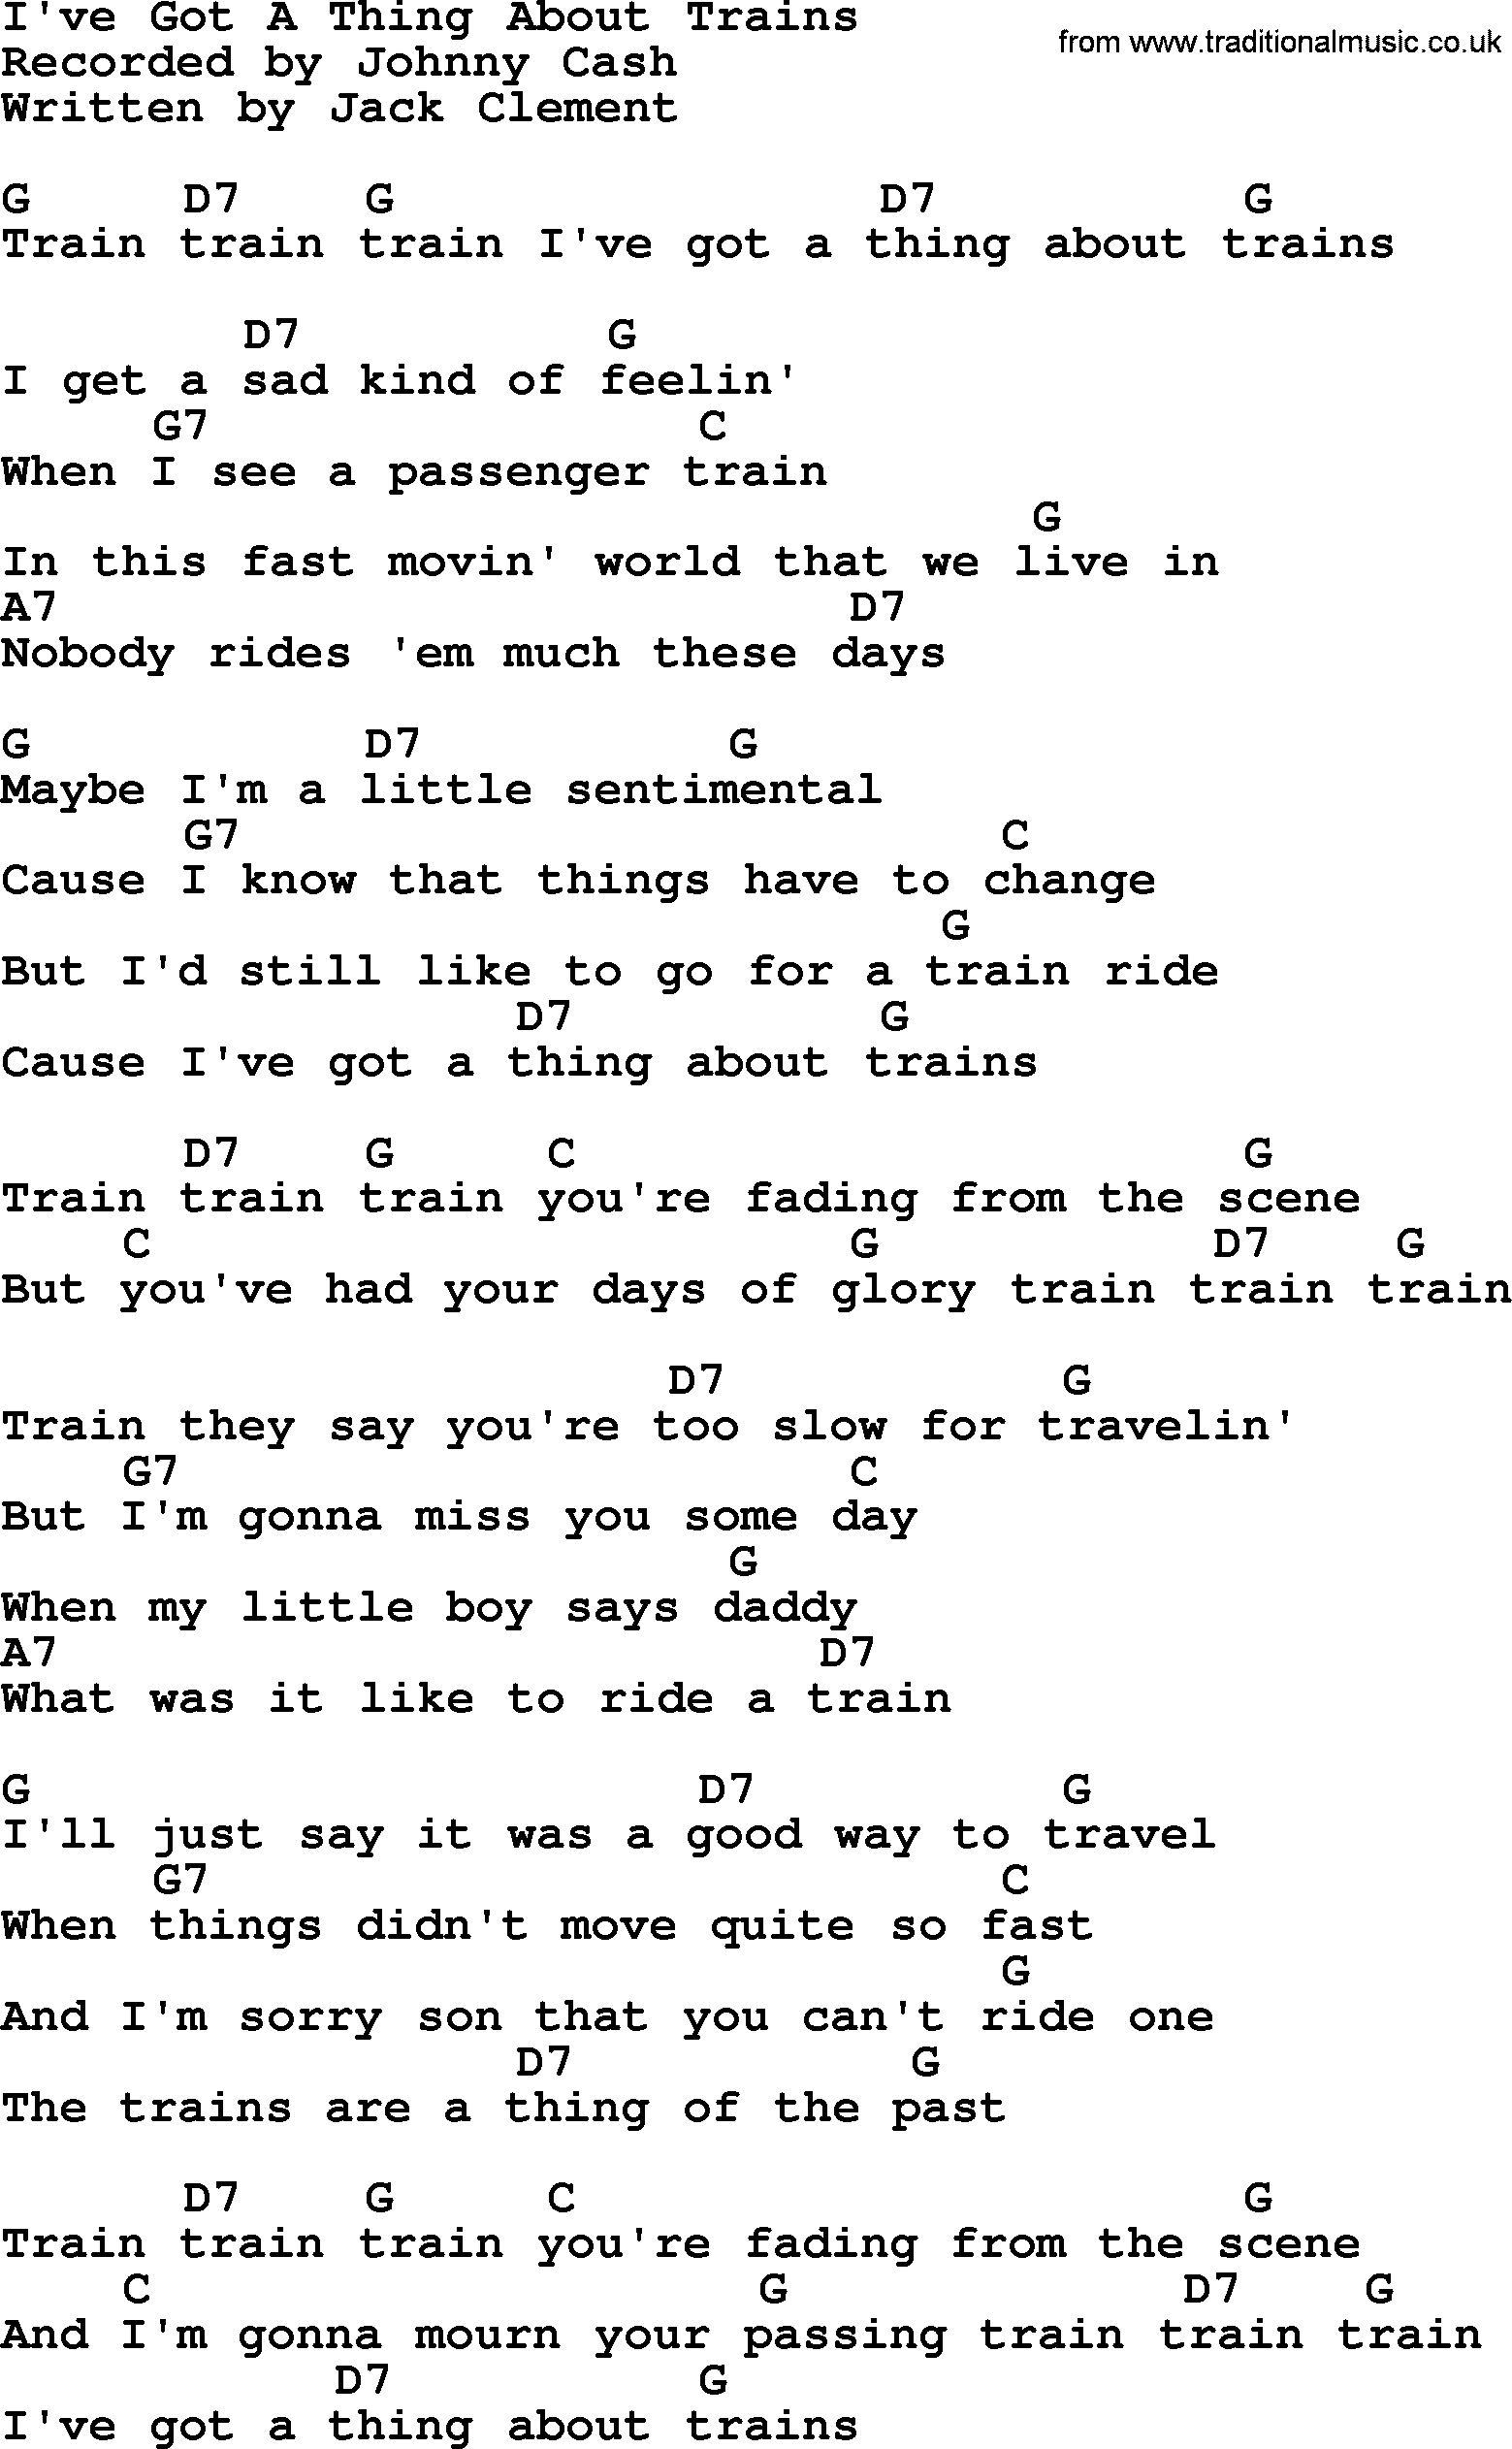 Johnny Cash Song Ive Got A Thing About Trains Lyrics And Chords